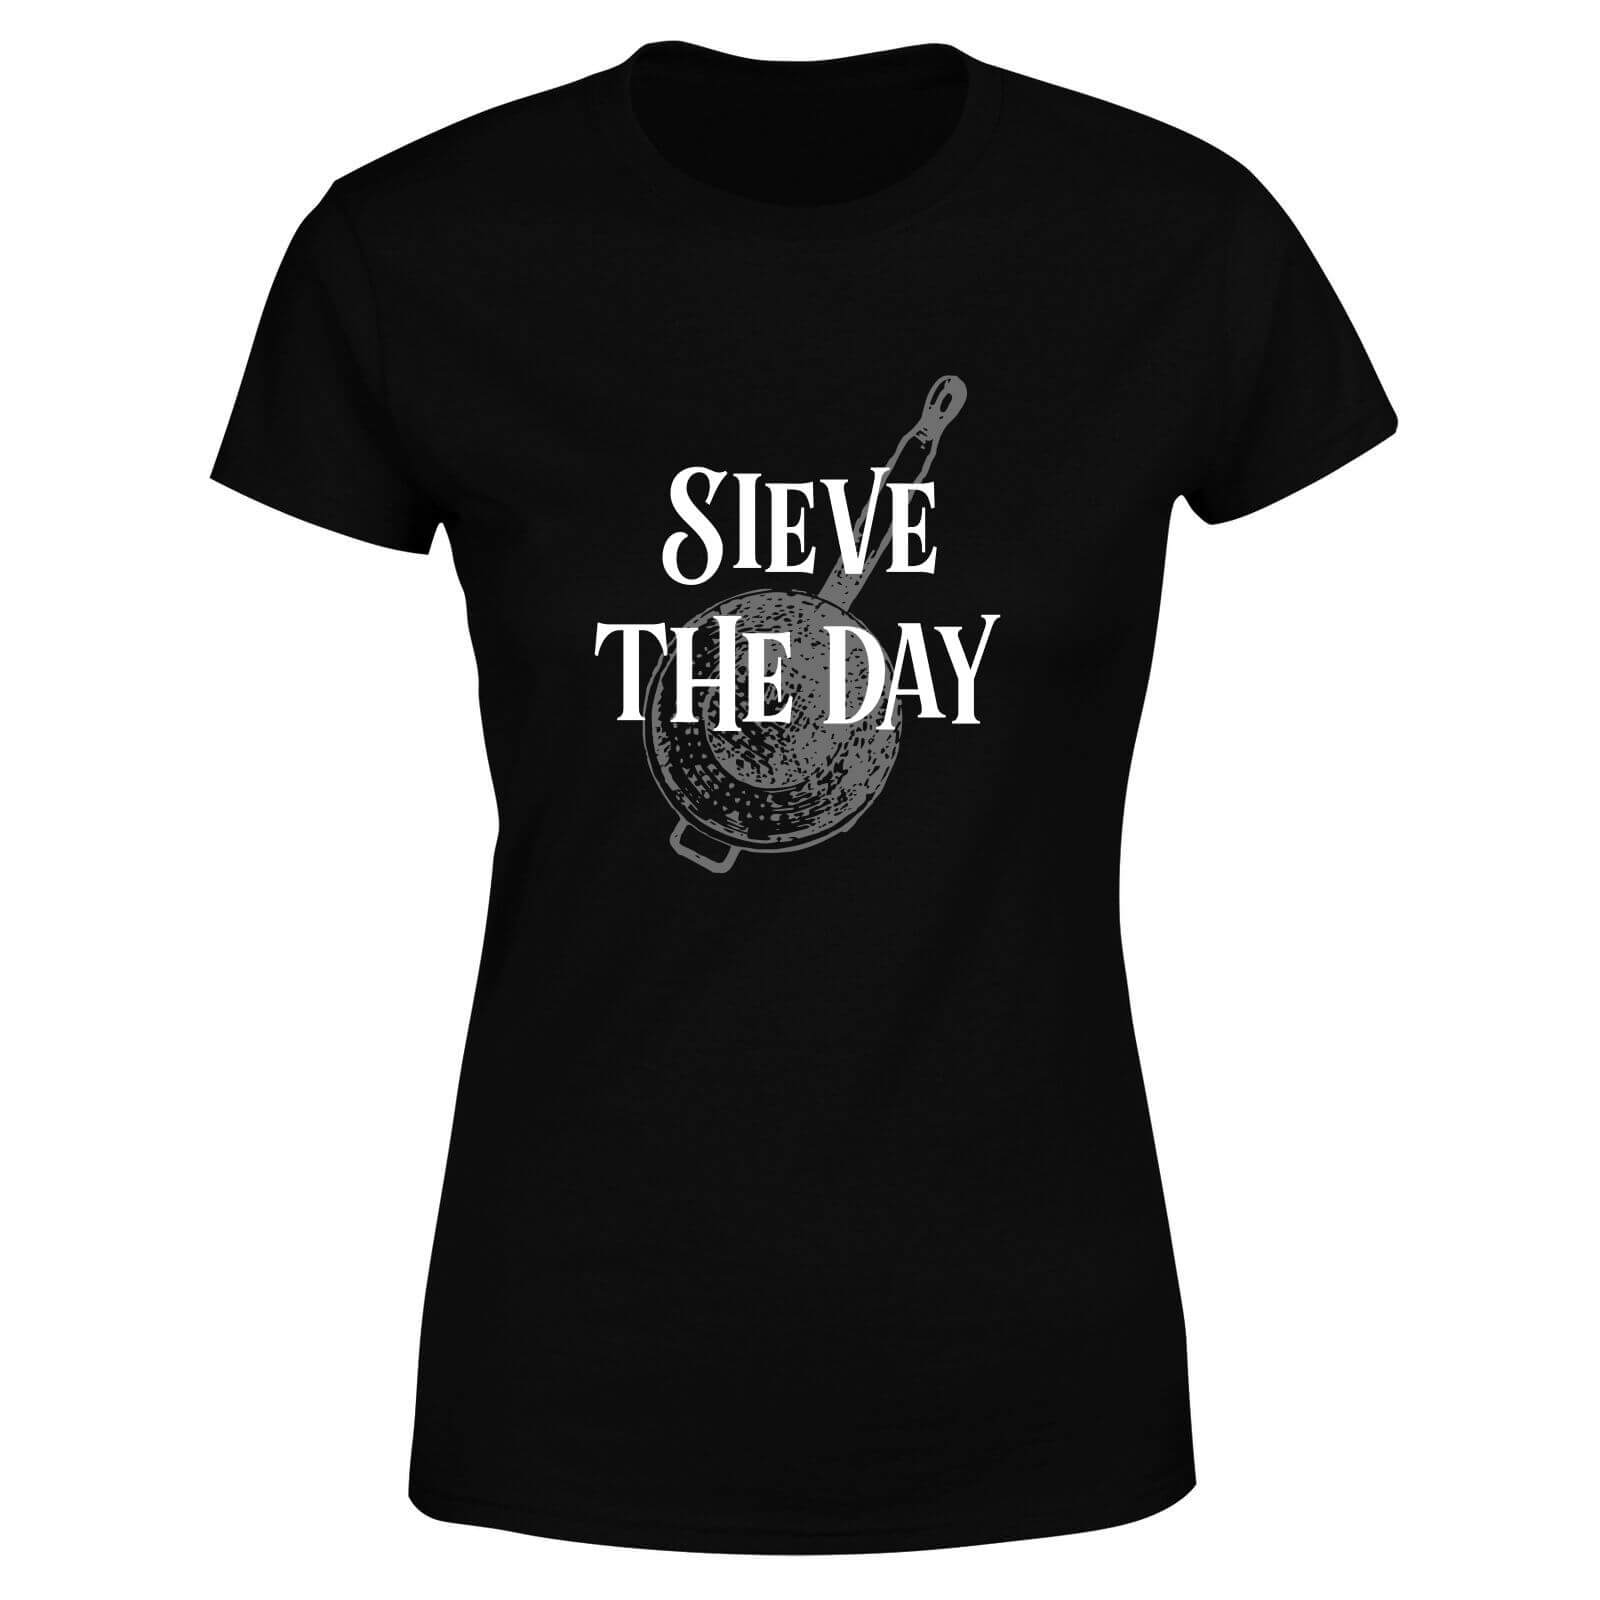 Sieve The Day Women